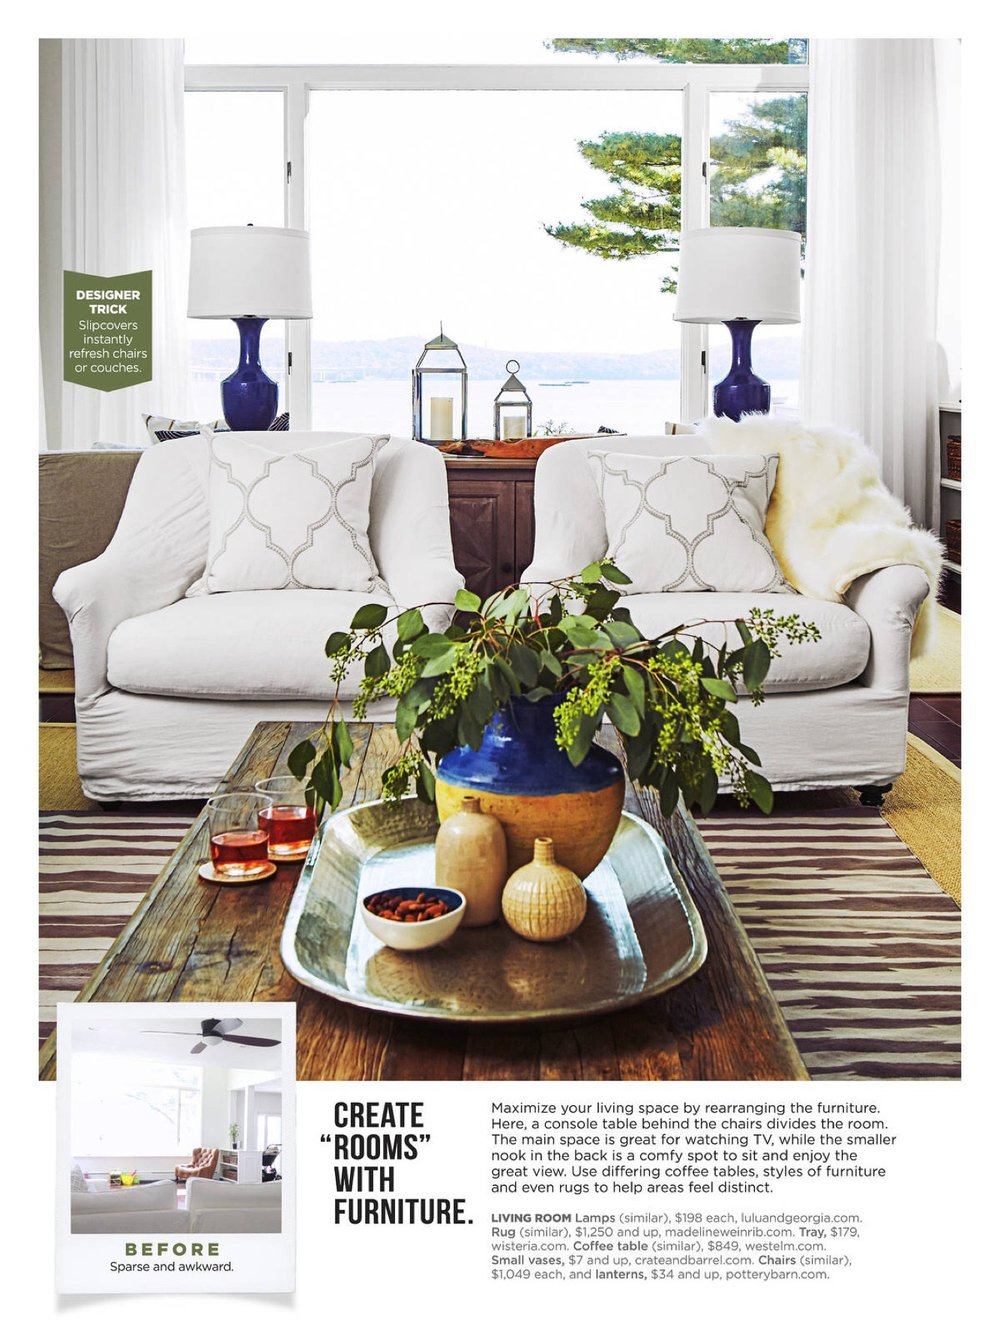 Good Good_Housekeeping_2016 01 Chango__Co._ _Quick_Stylish_Upgrades_For _Every_Room_ _4